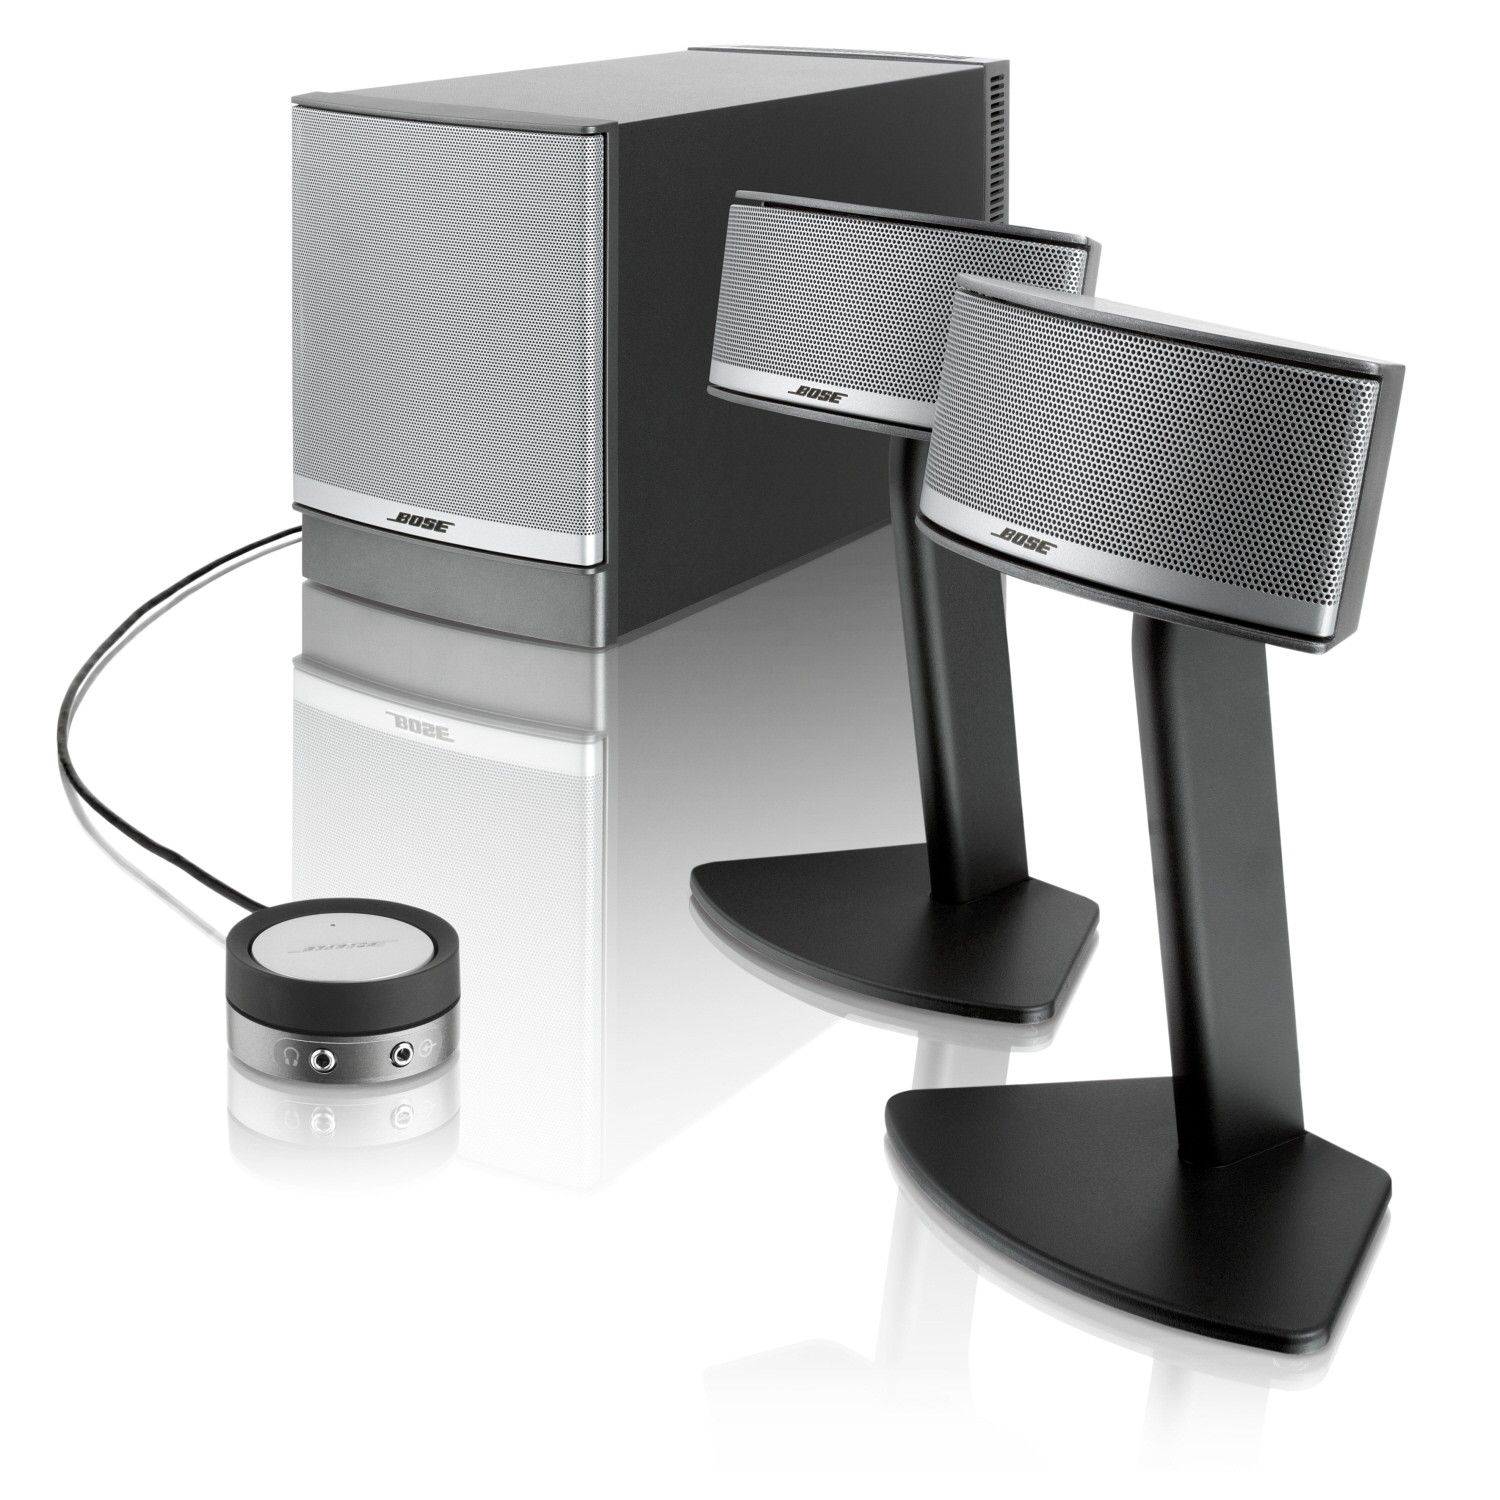 Bose Speakers With Images Computer Speakers Multimedia